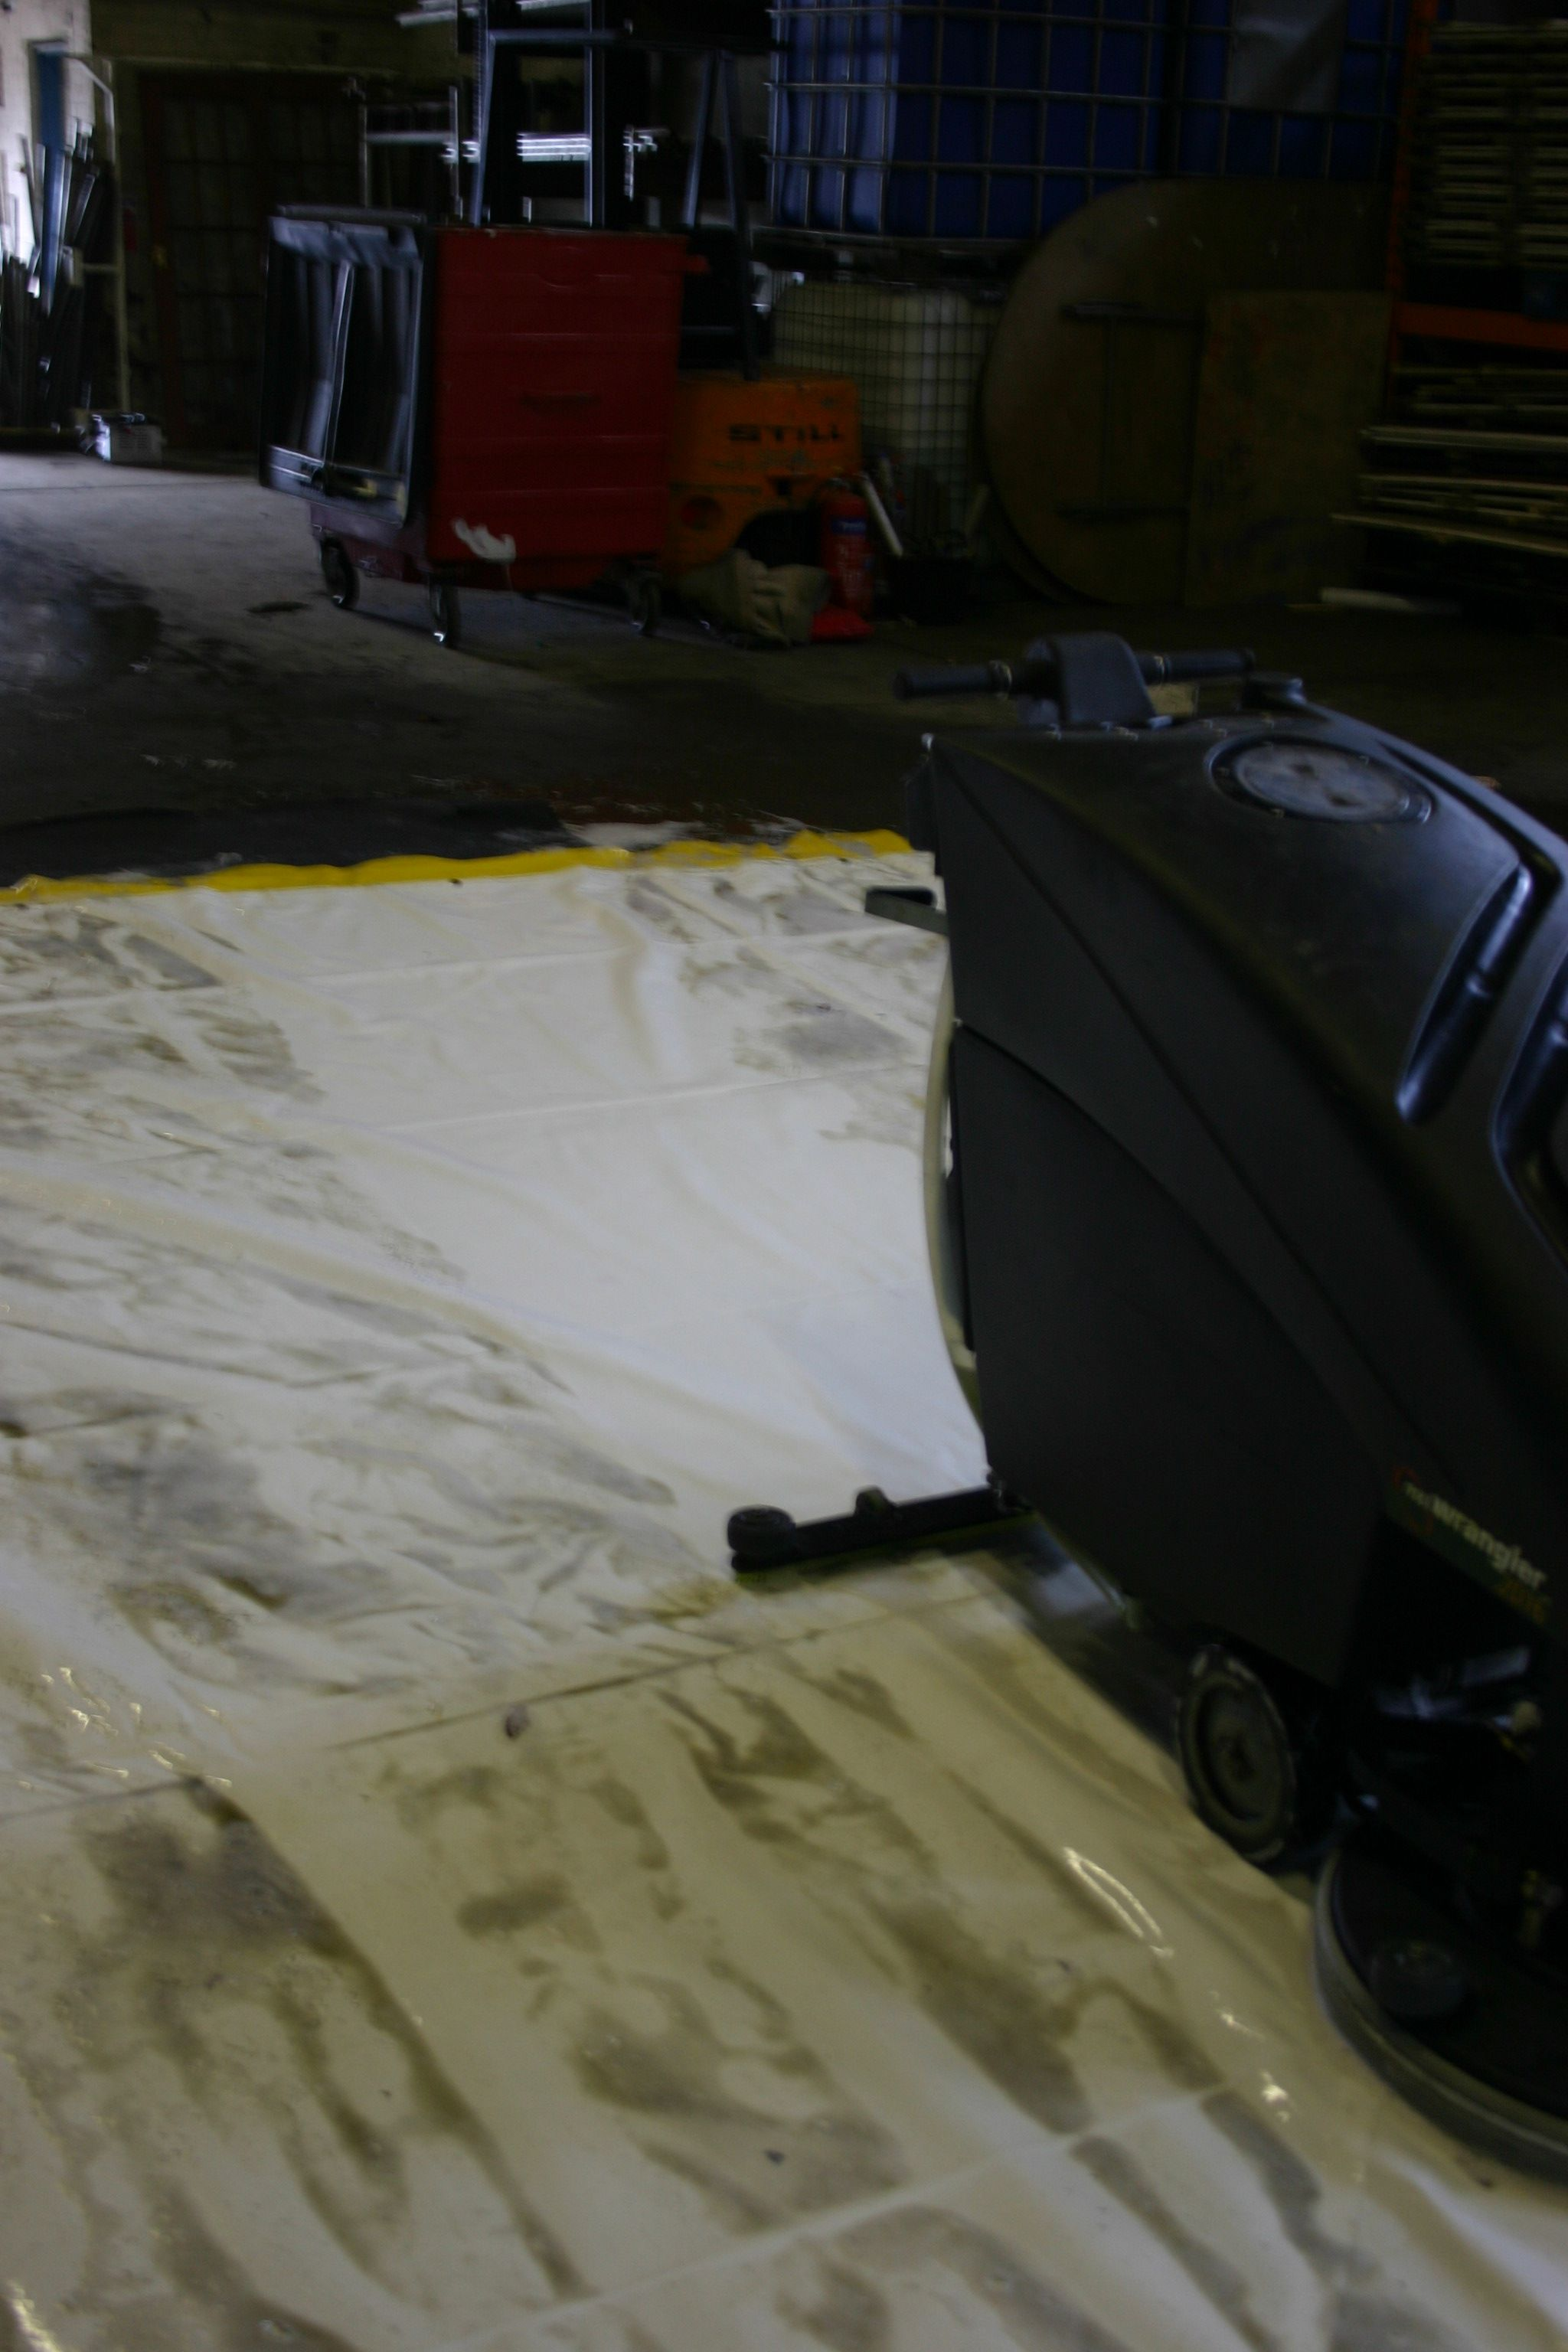 I found a scrubber dryer would work very well as we could not jet wash in our location